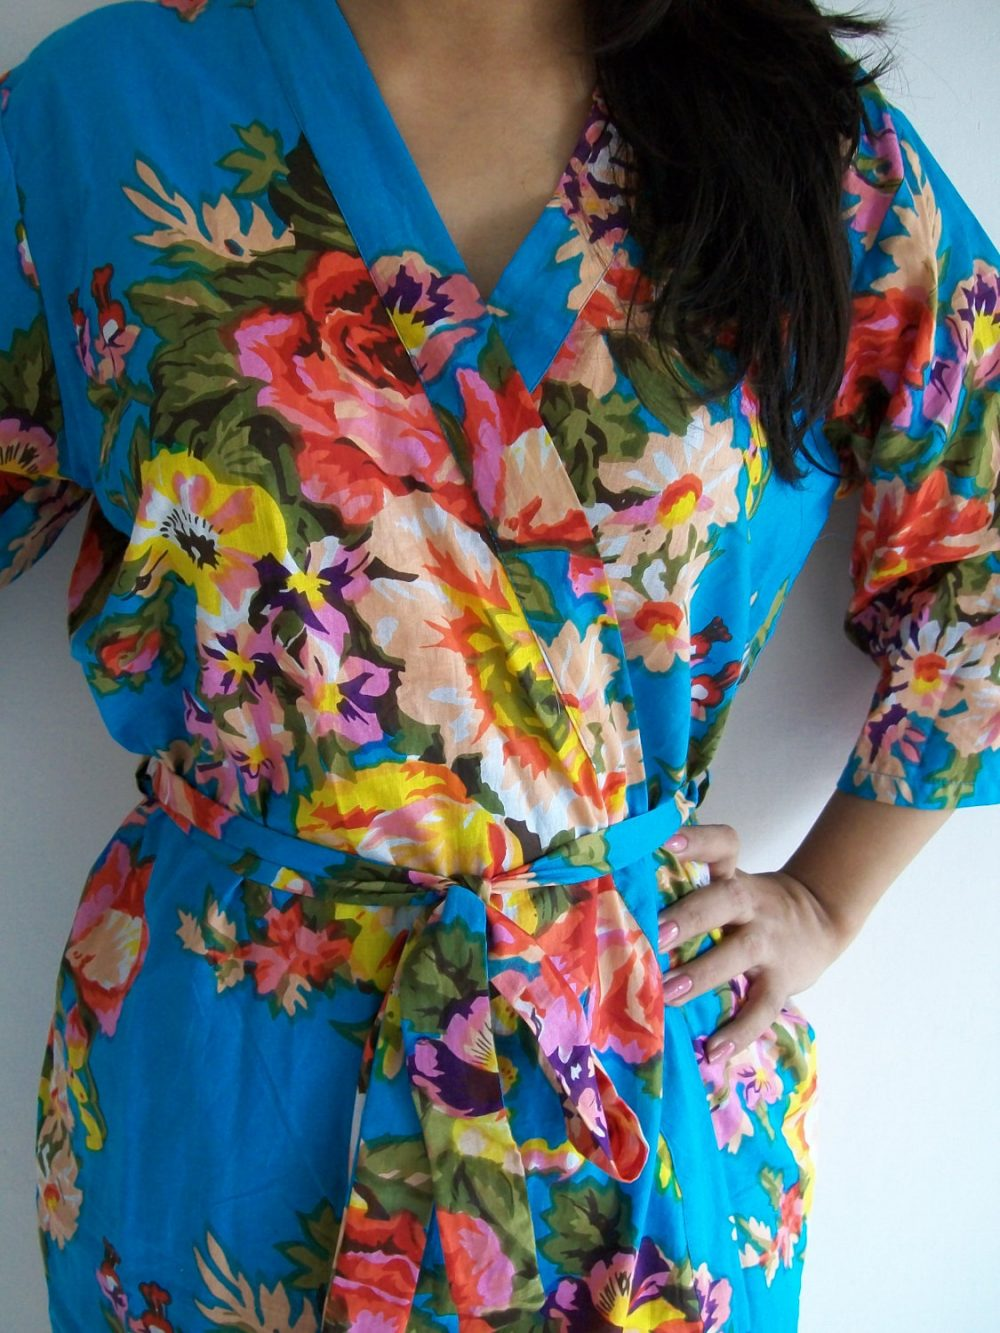 Codea-6, Light Blue Bridesmaid Robe, Floral Bridesmaids Gift, Getting Ready Robes, Baby Shower, Kimono